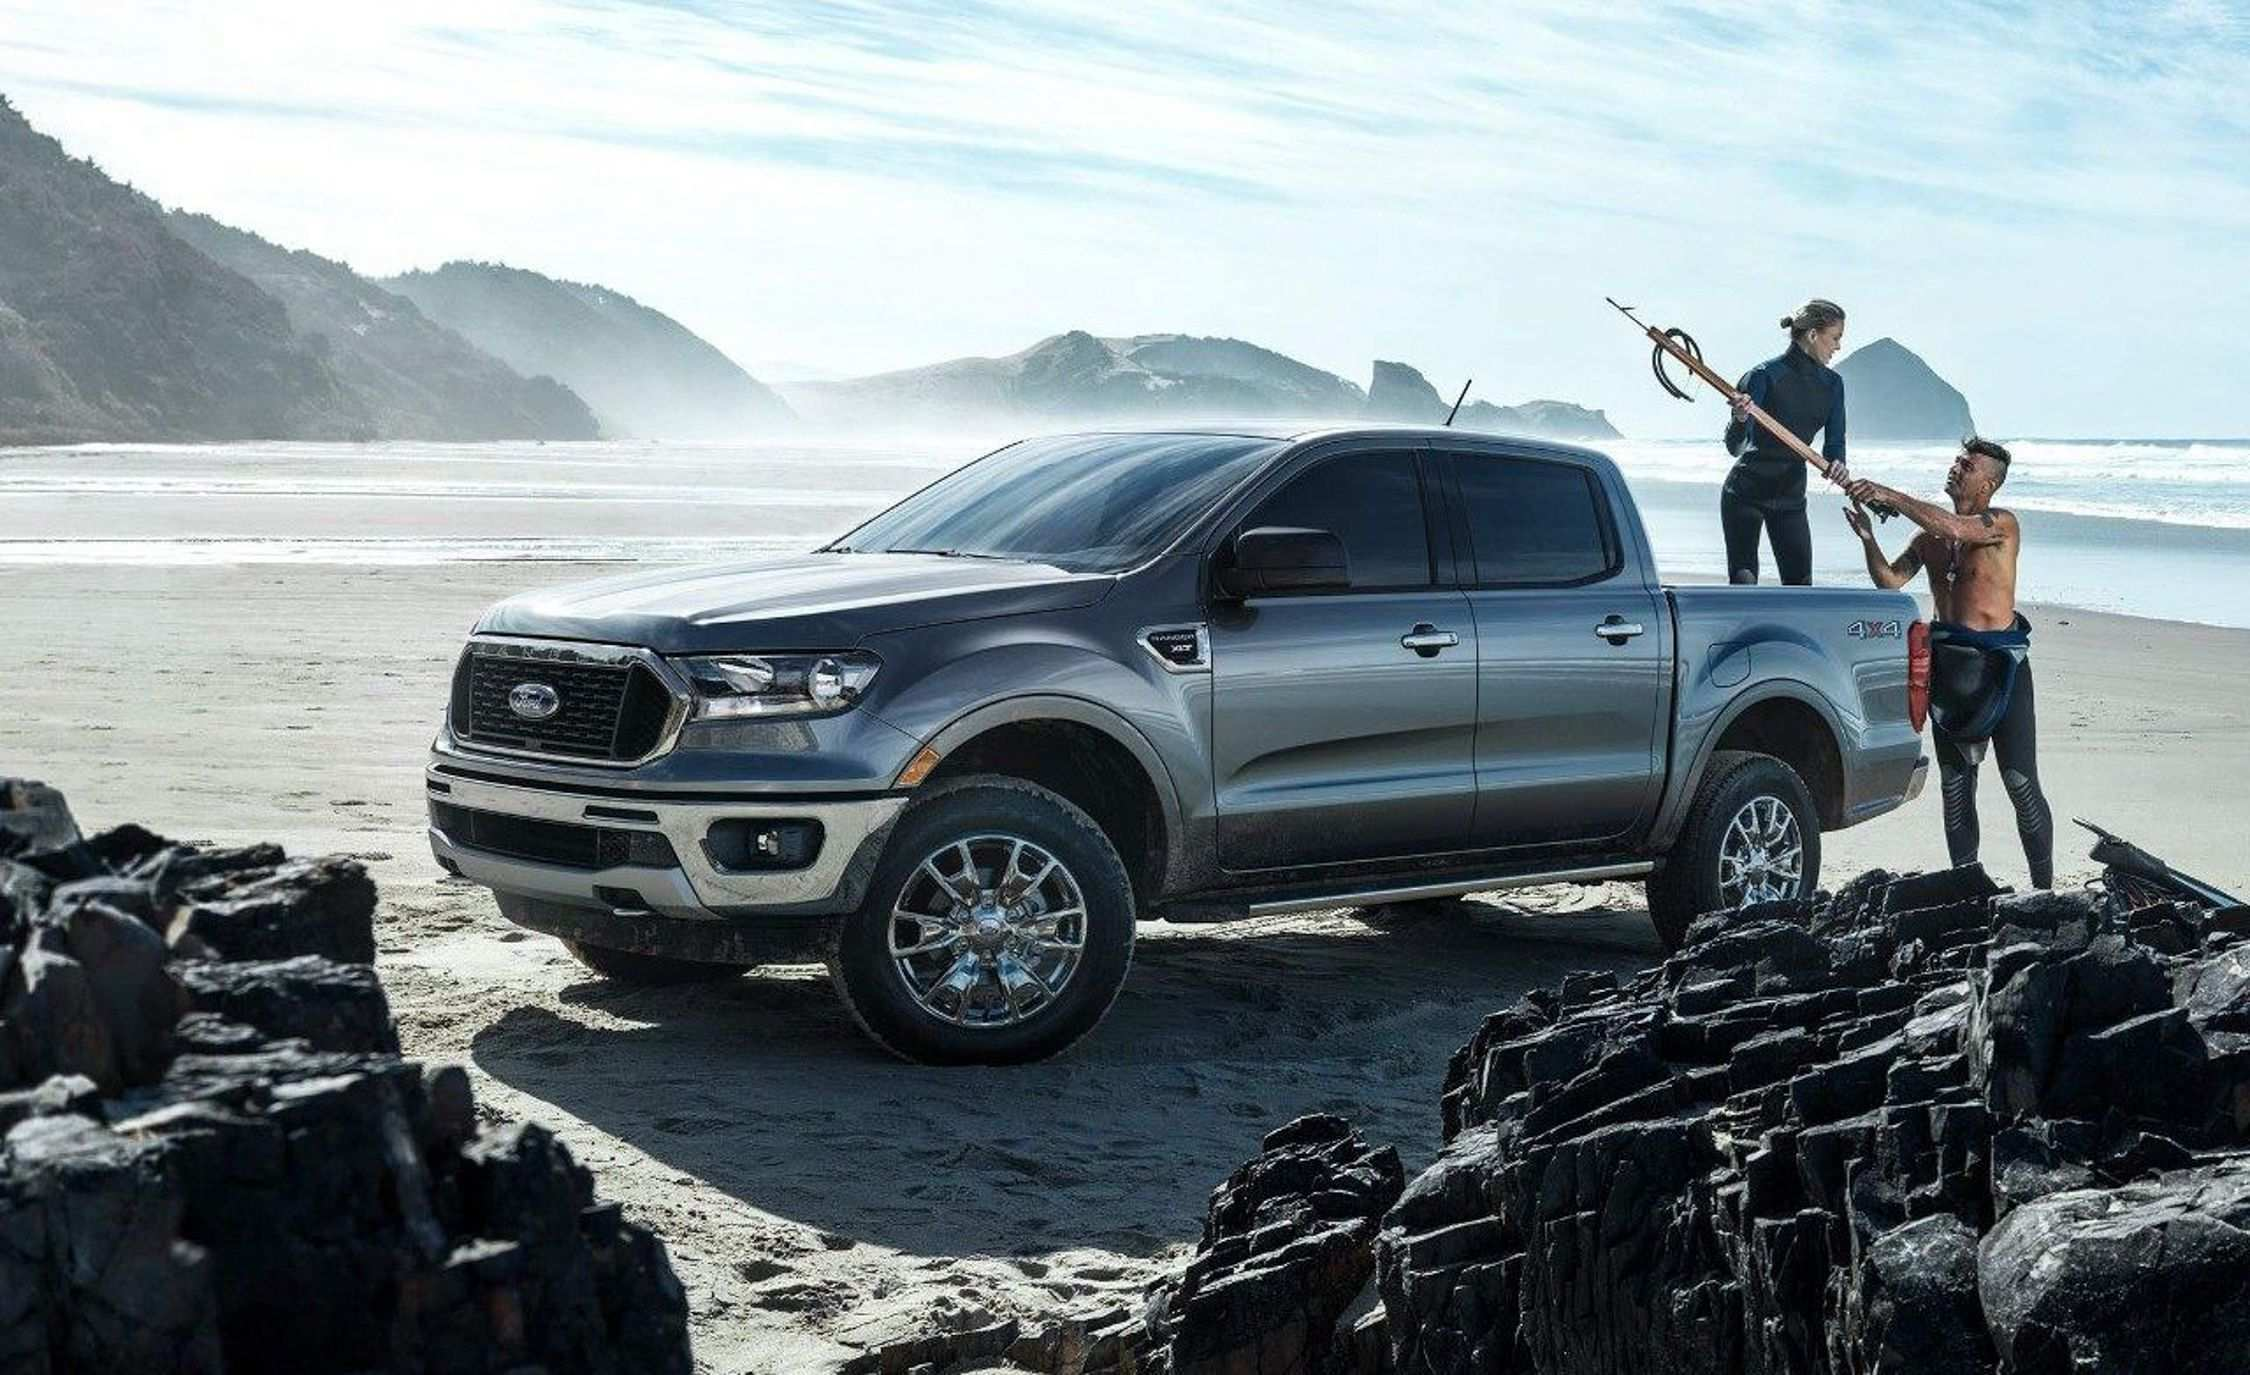 40 The 2020 Ford Ranger Vs BMW Canyon Photos with 2020 Ford Ranger Vs BMW Canyon